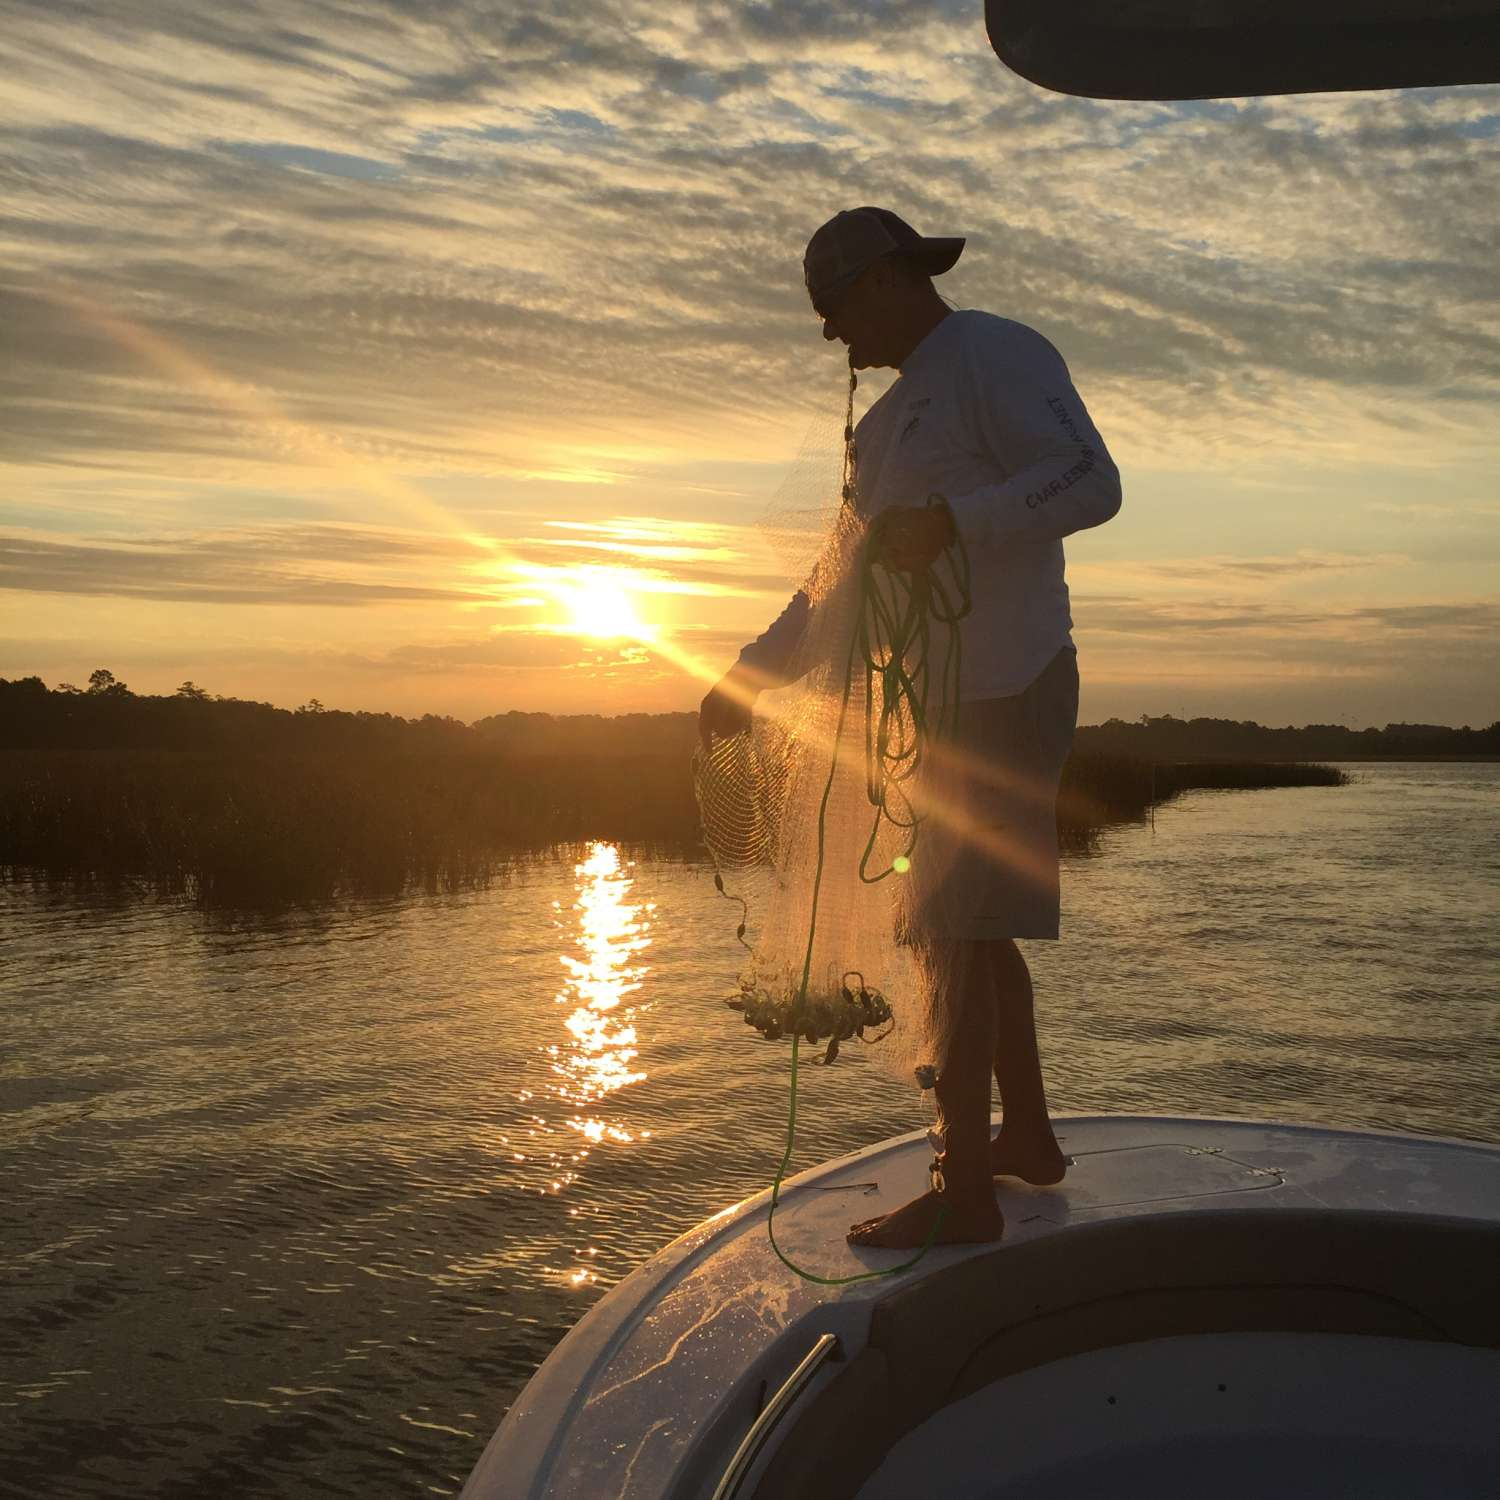 Title: Sunrise On The Wando - On board their Sportsman Heritage 211 Center Console - Location: Mount Pleasant, South Carolina. Participating in the Photo Contest #SportsmanFebruary2017